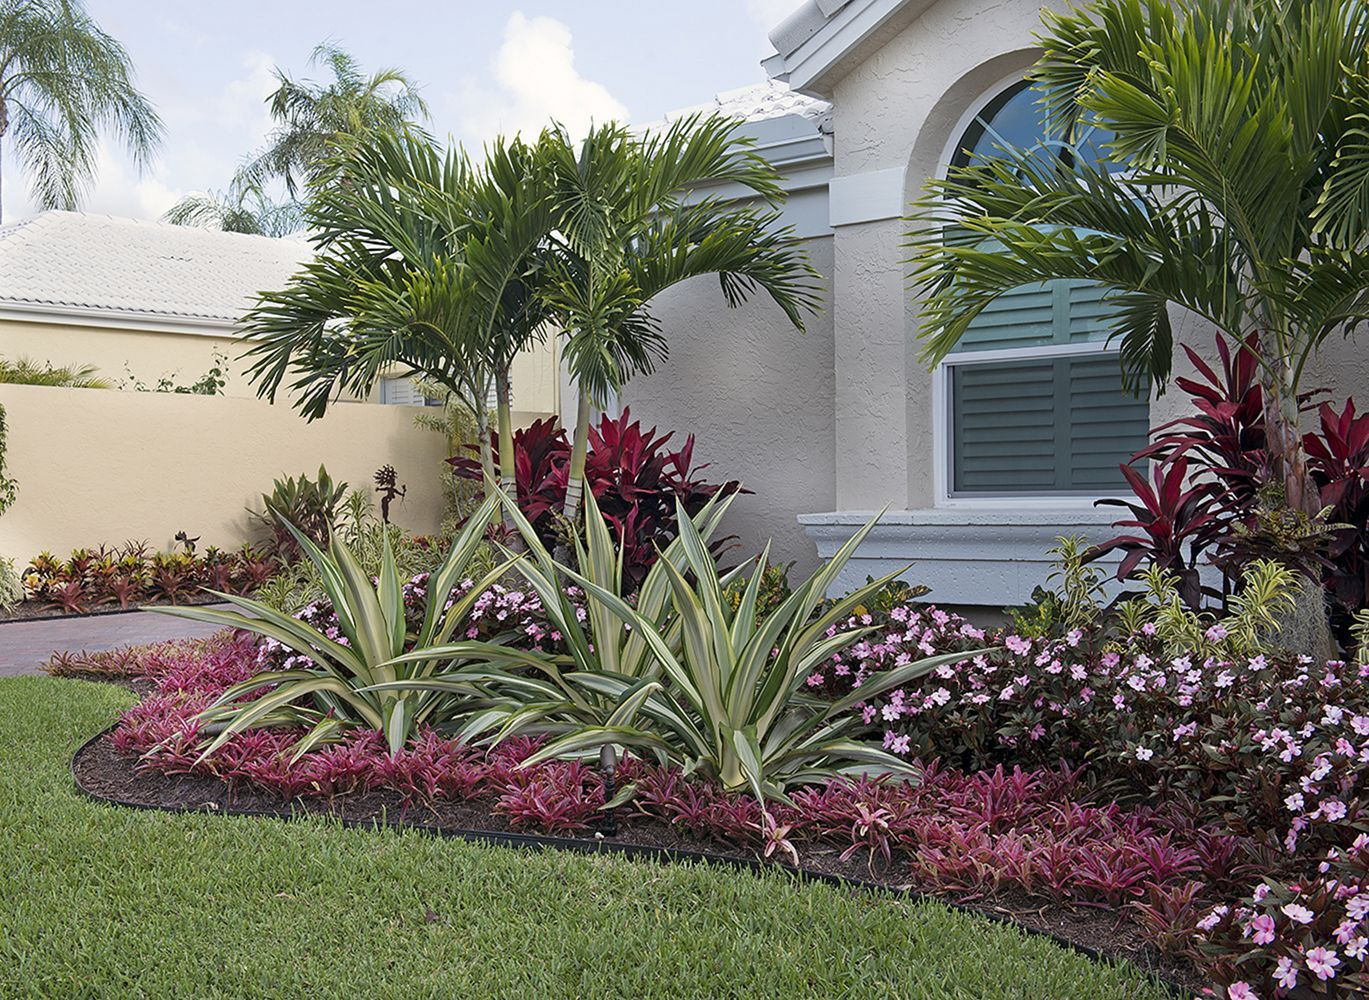 35  beautiful tropical front yard landscape ideas to make your home more awesome